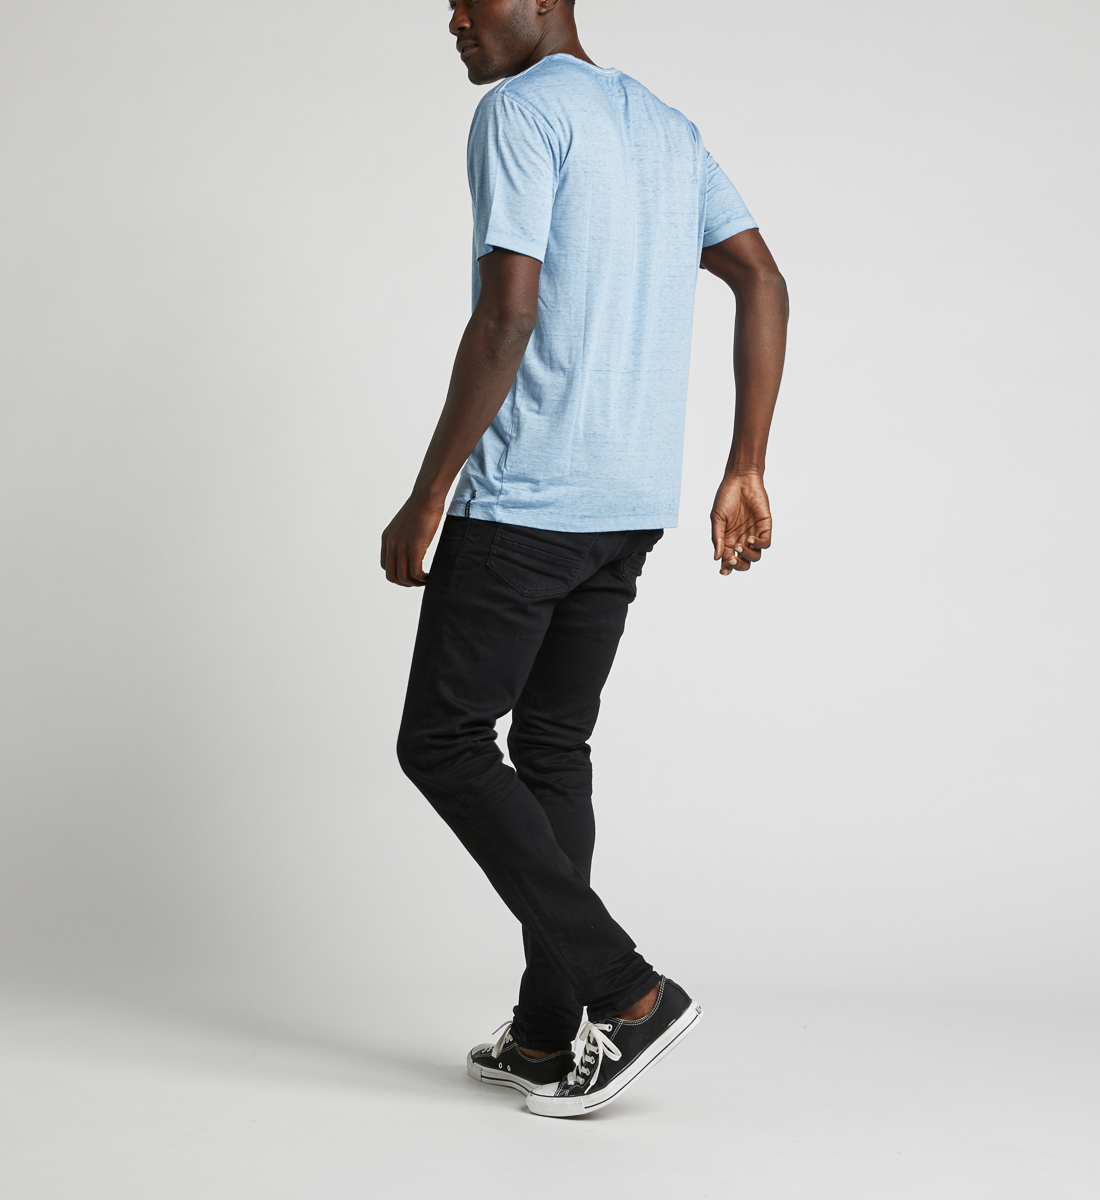 Kaleo Henley Tee,Light Blue Side